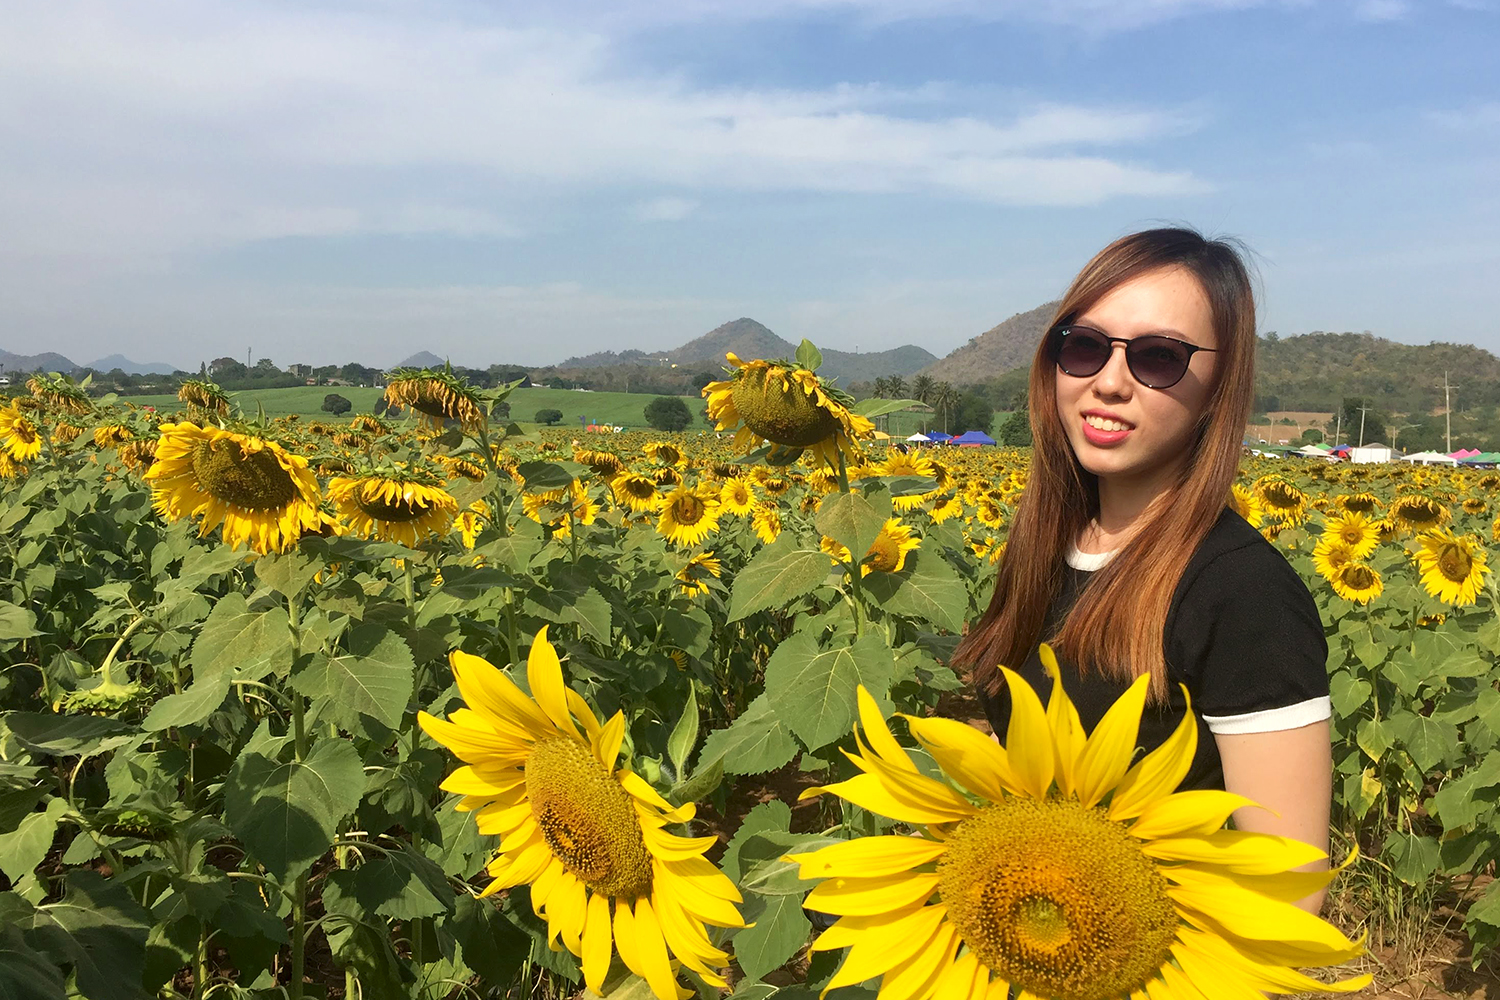 The sun is so glaring at the Manee Sorn Sunflower Field.